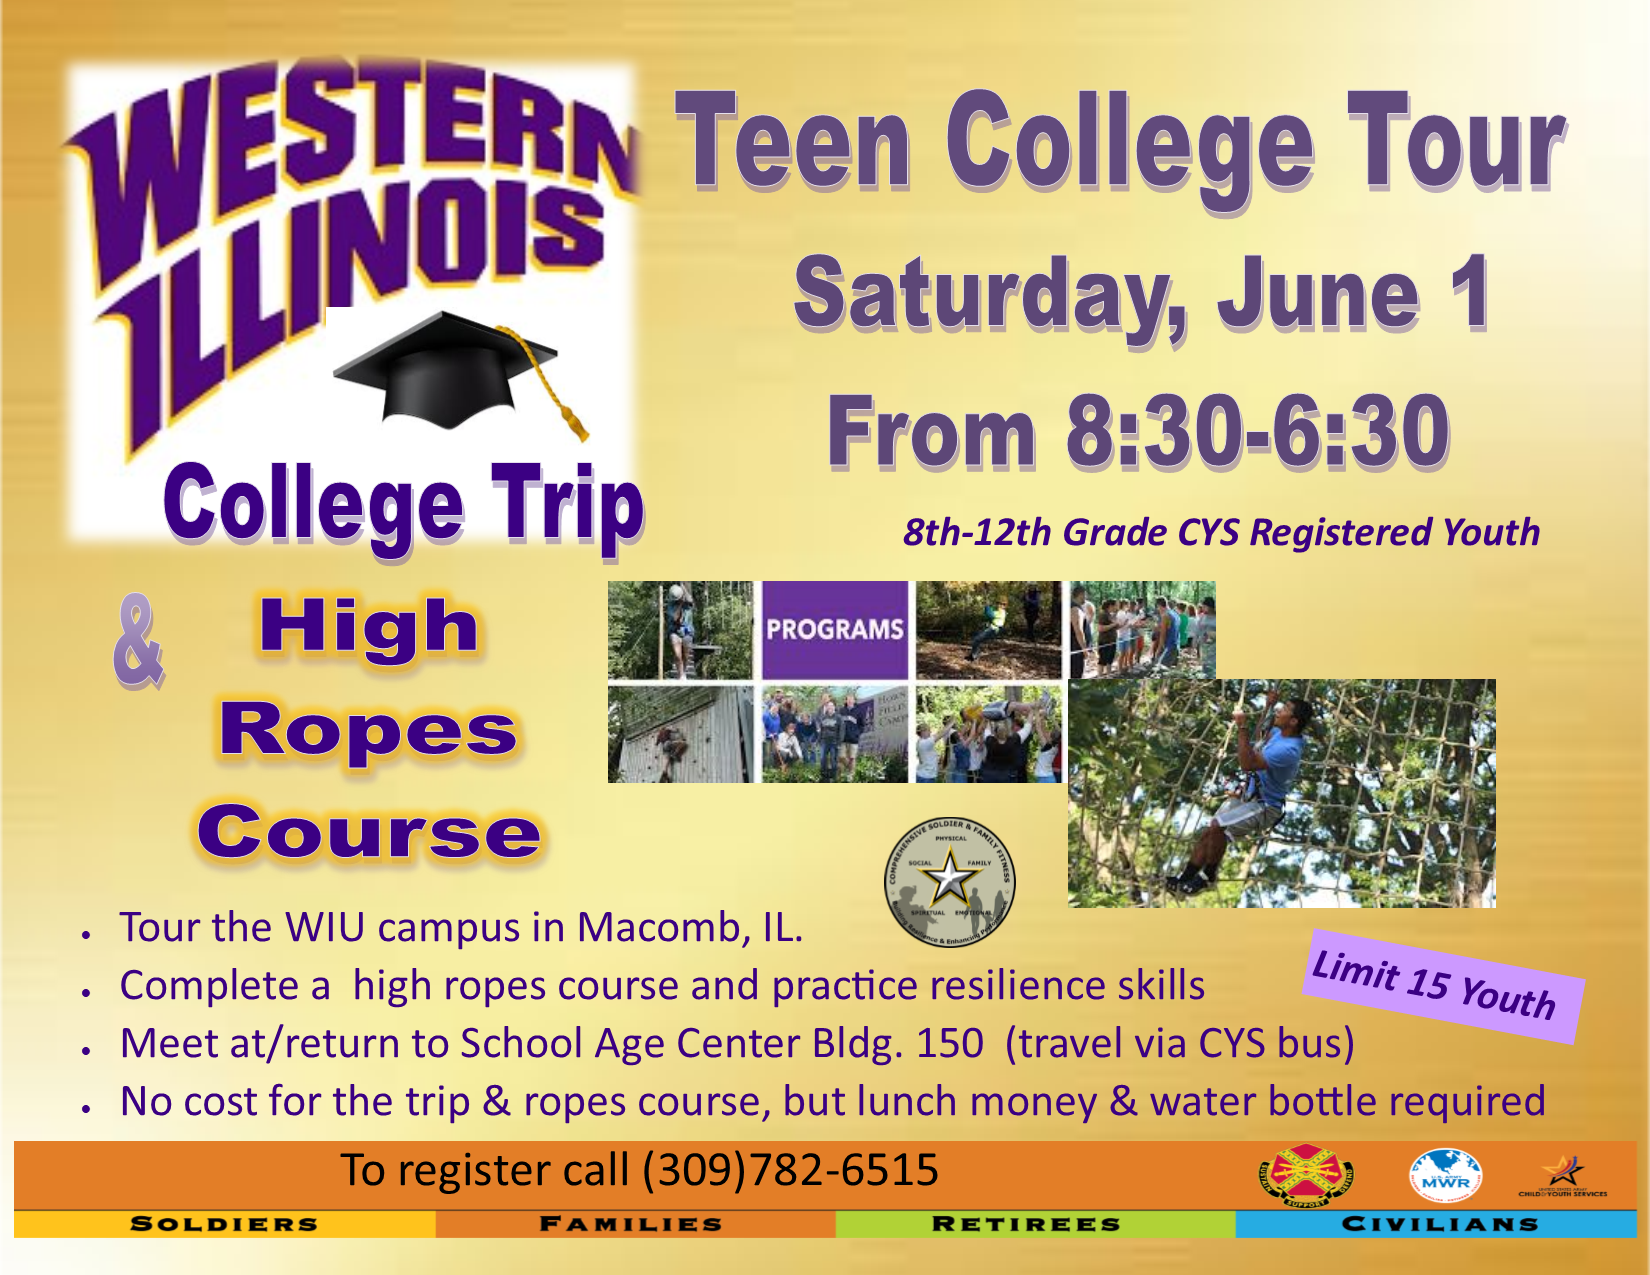 US Army MWR :: View Event :: Teen Resiliency: College Tour Macomb Wiu Campus Map on wiu quad cities campus, wiu moline campus, wiu campus map, wiu campus recreation,